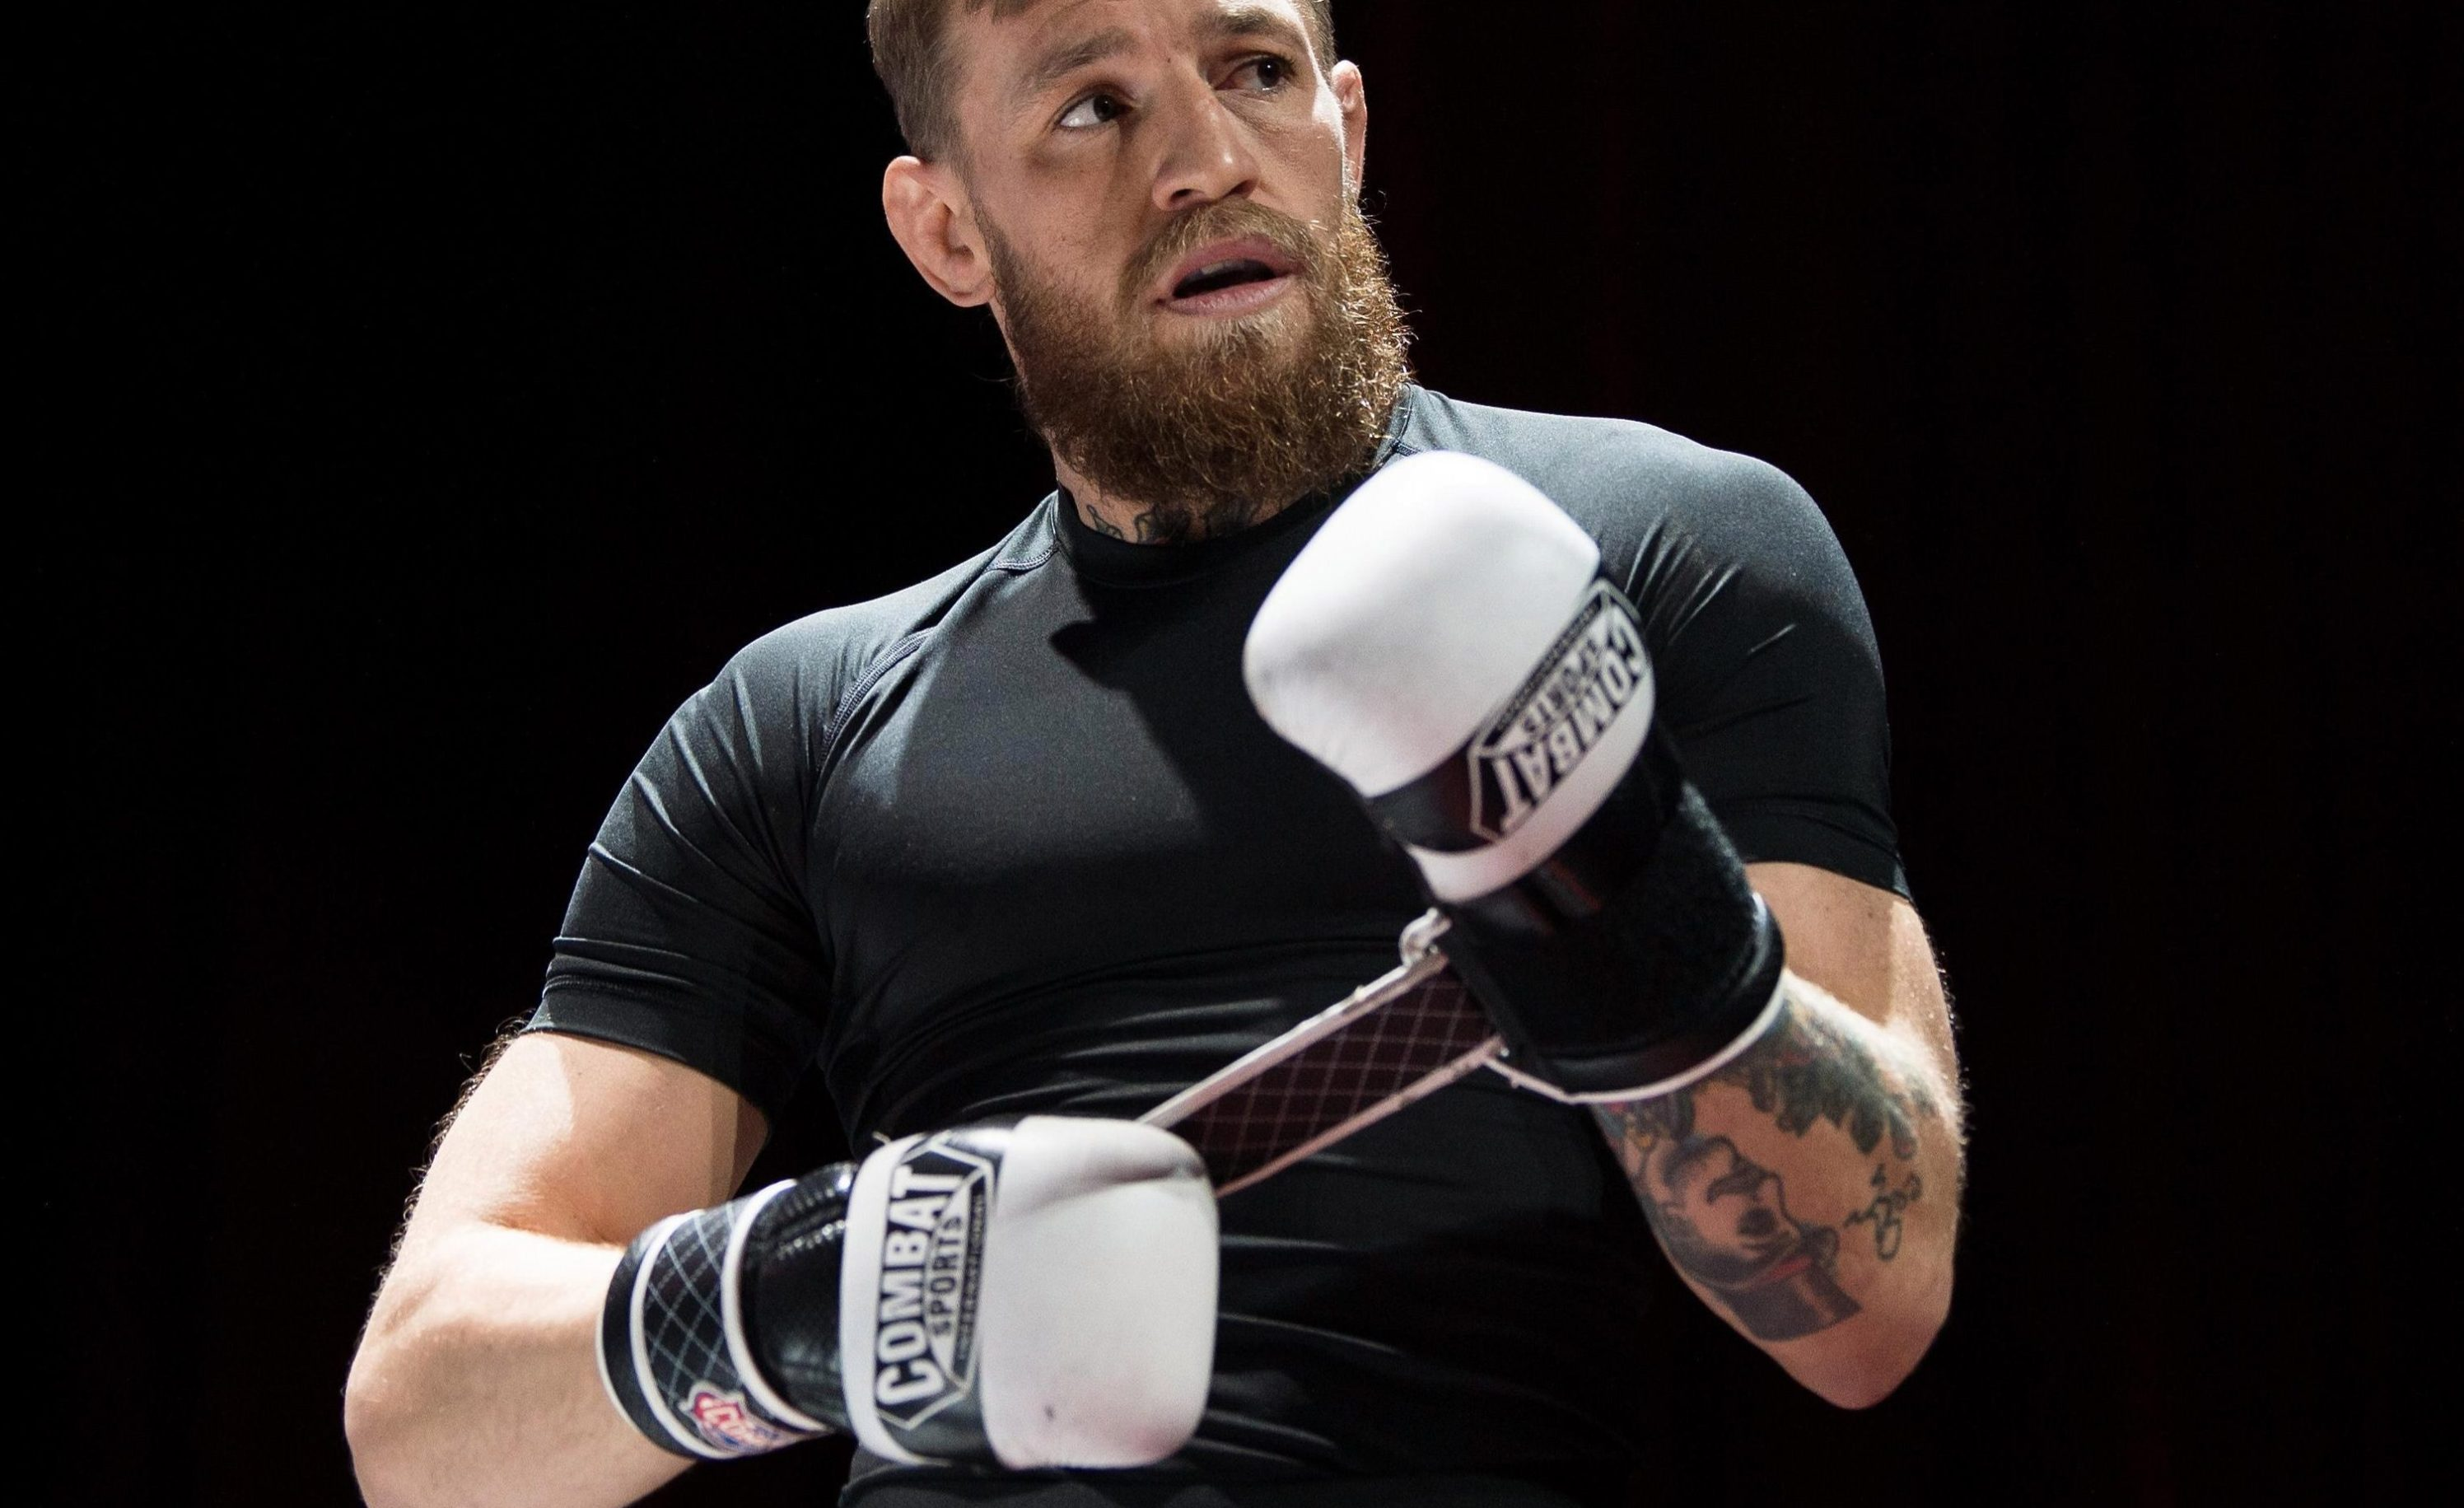 Conor McGregor prepares for his huge upcoming test against Khabib Nurmagomedov